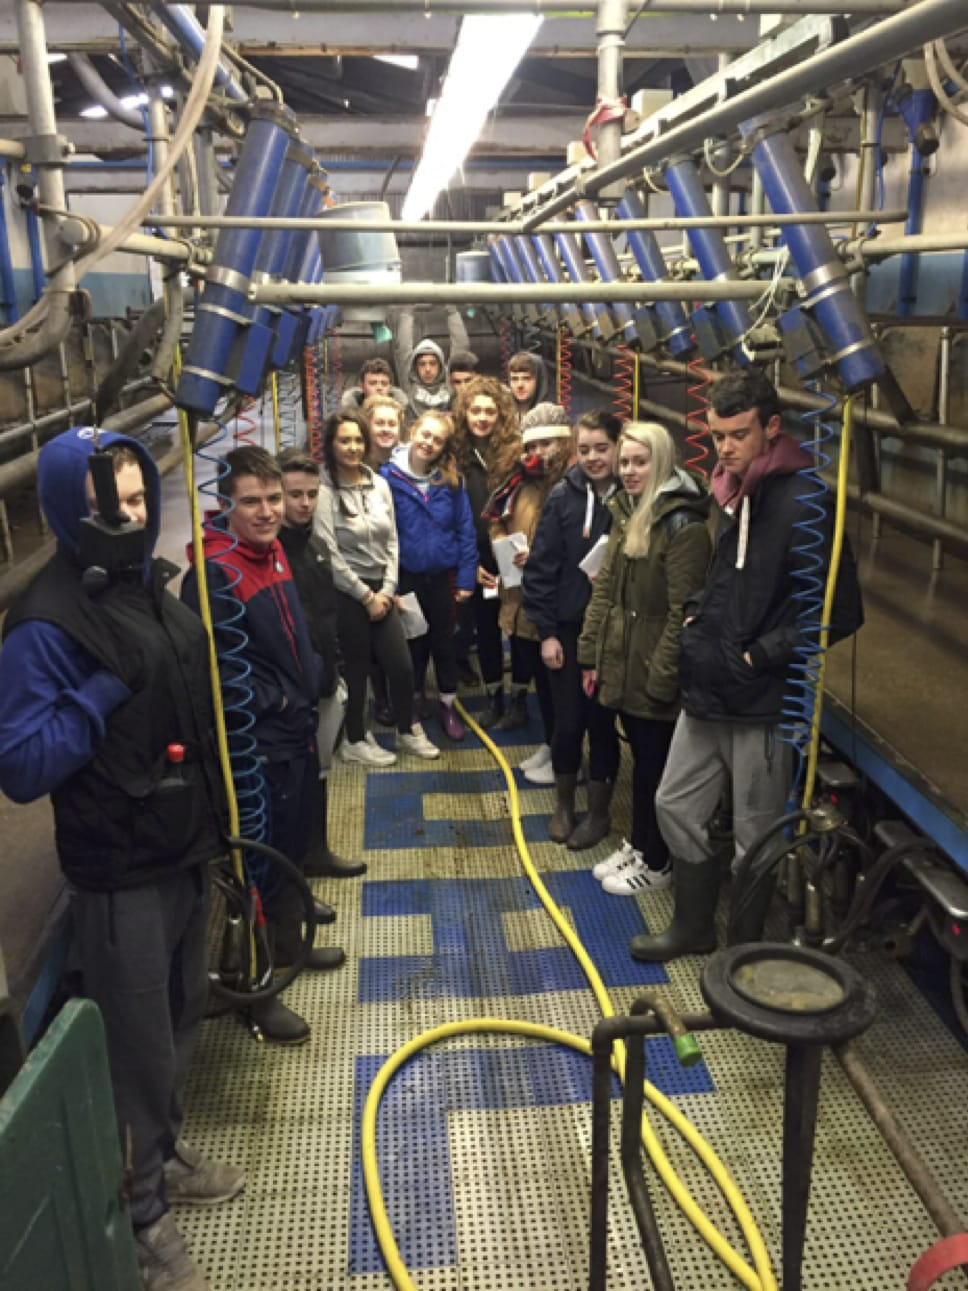 March 2017: Desmond College students analyse the Milking Parlour system used in Pallaskenry Agricultural College